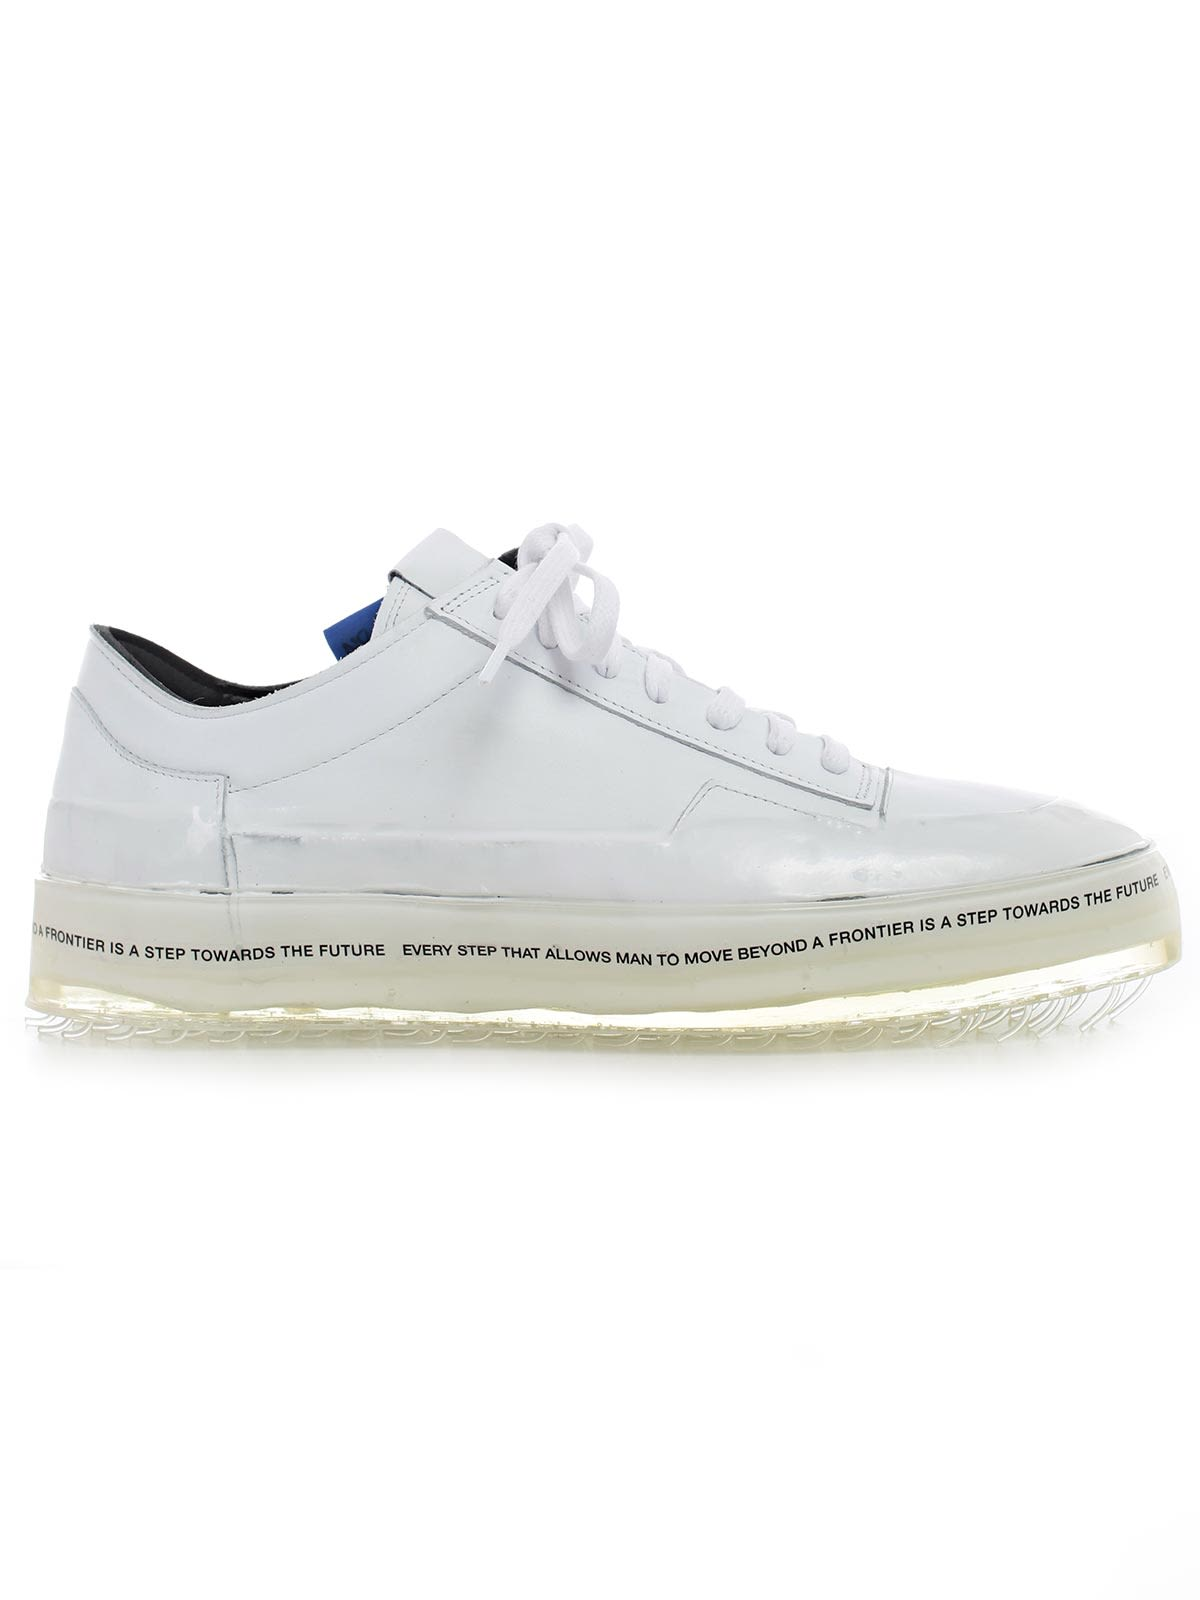 OXS RUBBER SOUL Oxs Rubber Soul Classic Sneakers in White